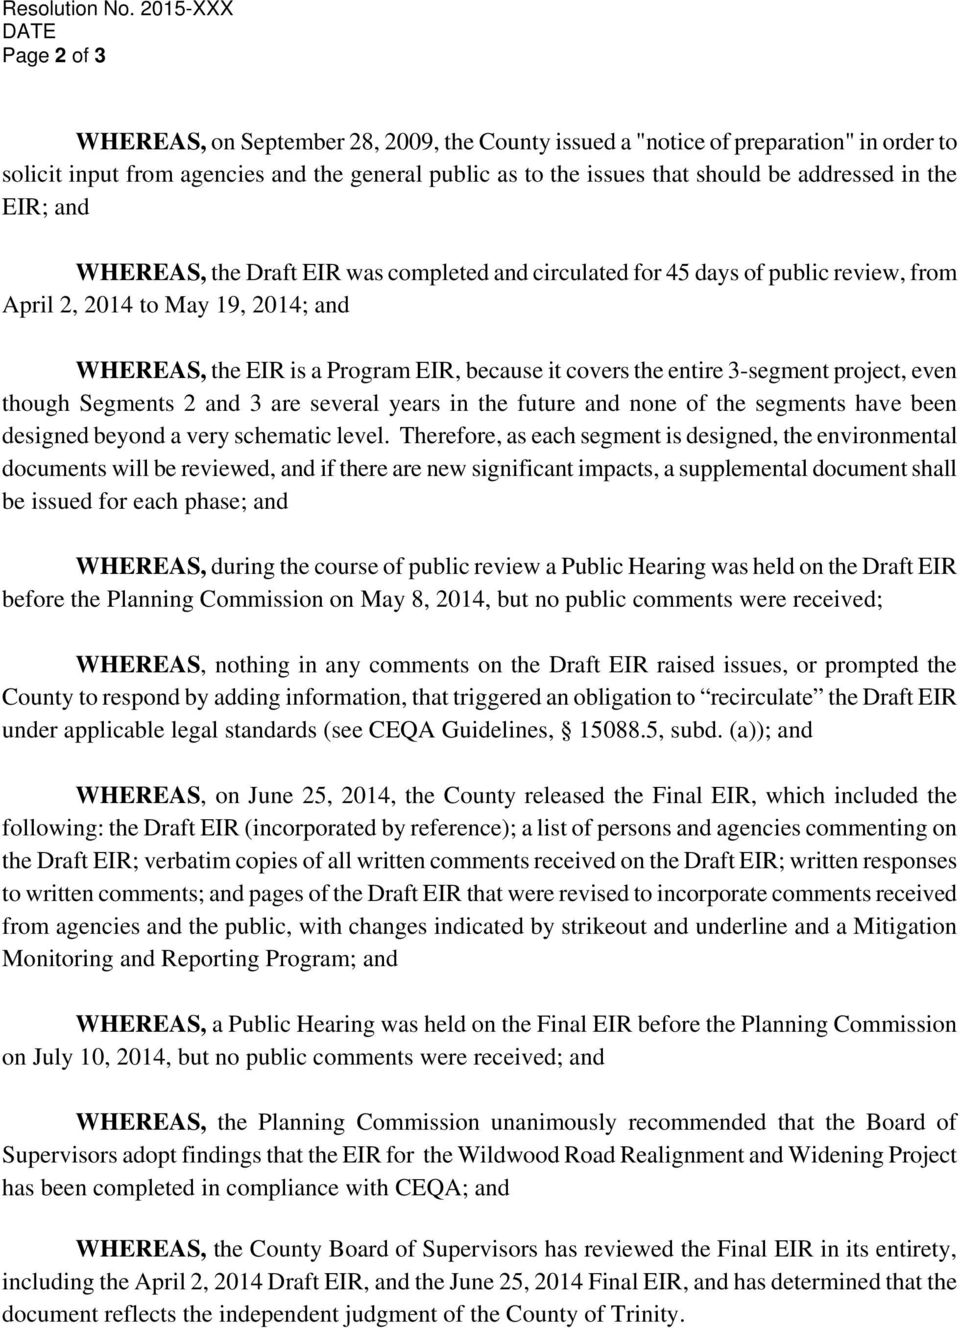 addressed in the EIR; and WHEREAS, the Draft EIR was completed and circulated for 45 days of public review, from April 2, 2014 to May 19, 2014; and WHEREAS, the EIR is a Program EIR, because it